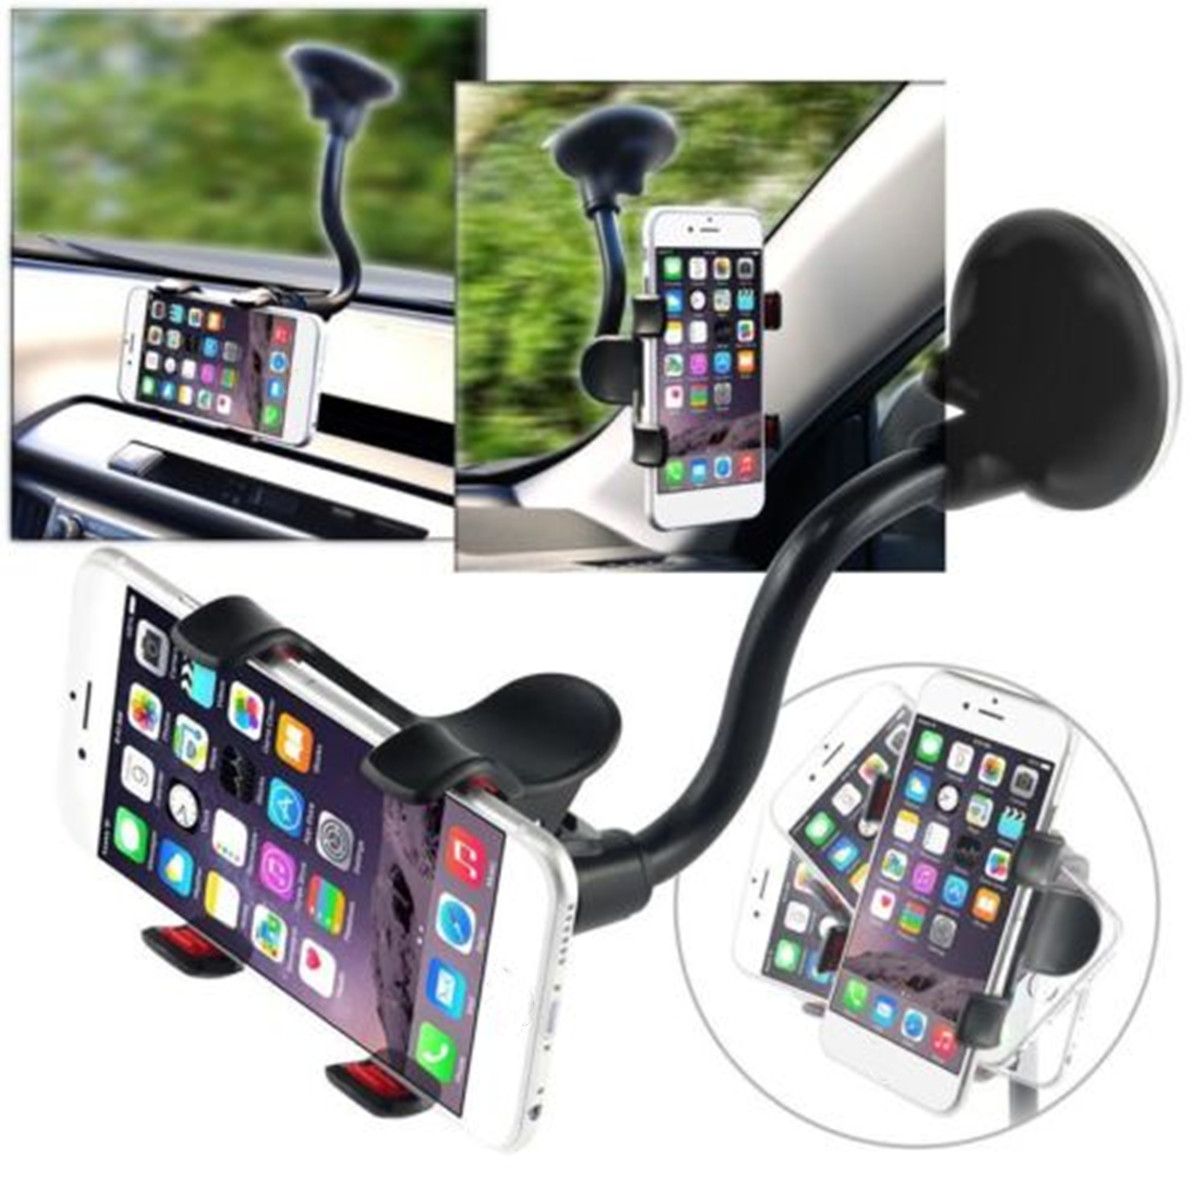 360 Degree Rotating Flexible Car Wind Shield Mount Holder Stand Bracket for iPhone 8 iPhone X Samsung